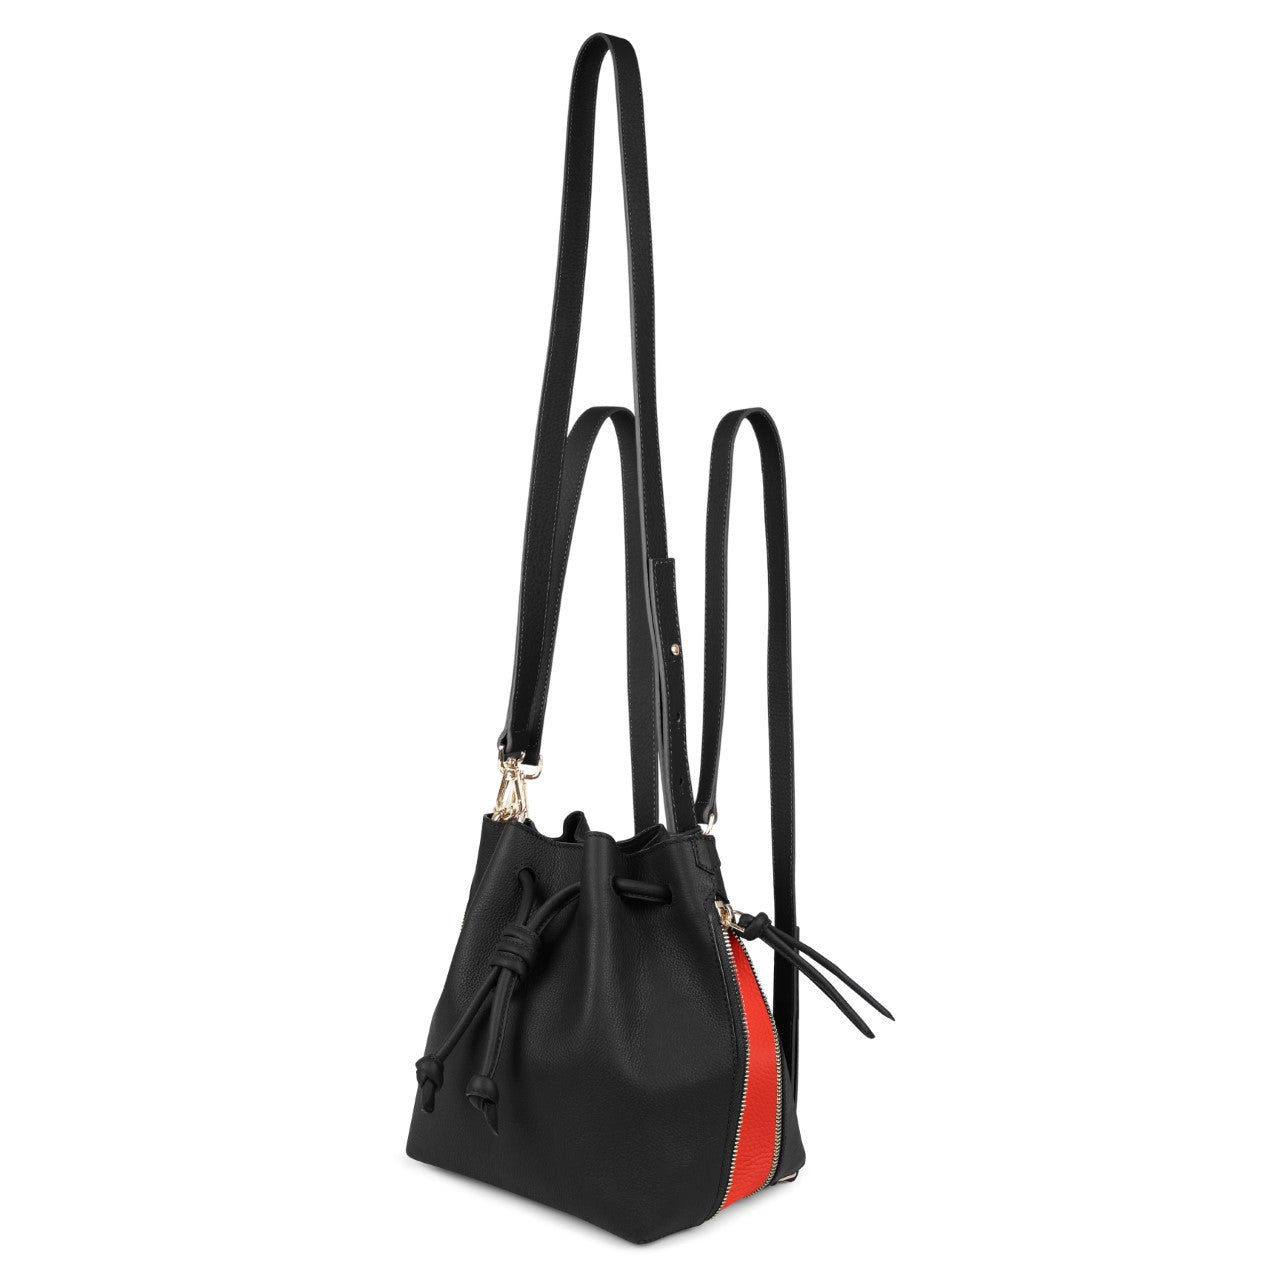 A convertible medium leather red and black bucket crossbody bag that could be used as a backpack, front image.